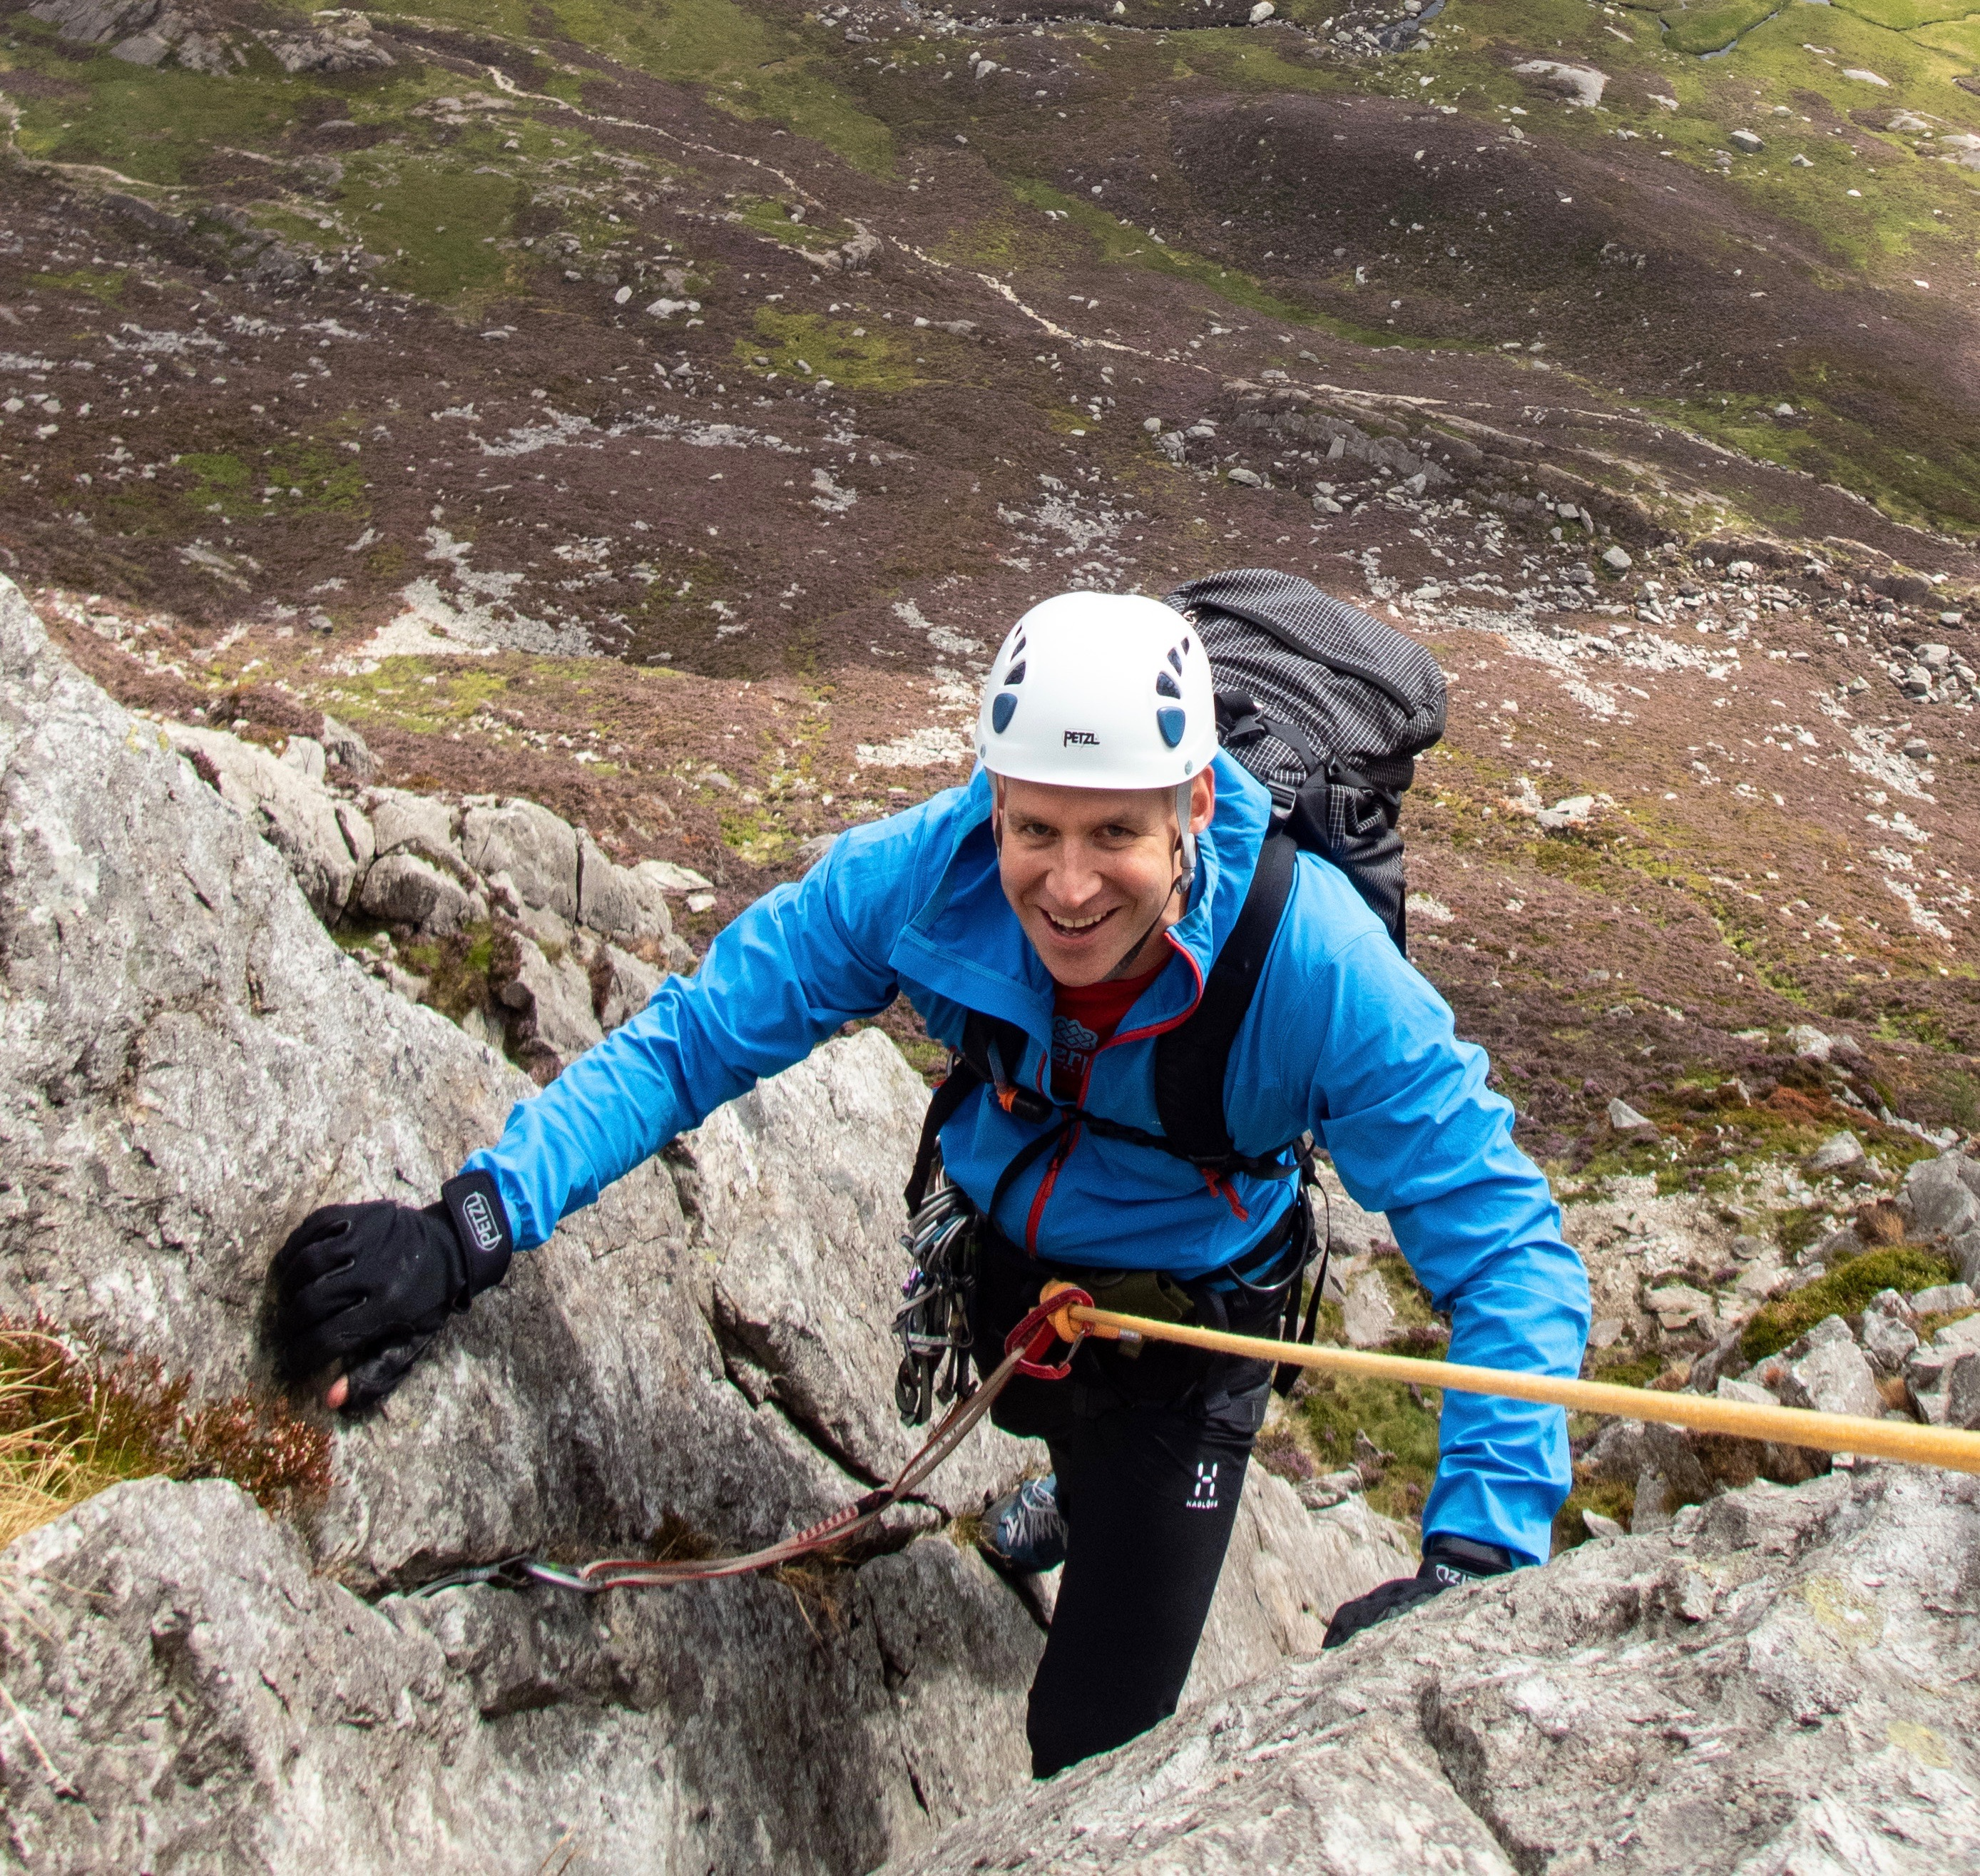 Snowdonia Rock Climbing Guided Weekend